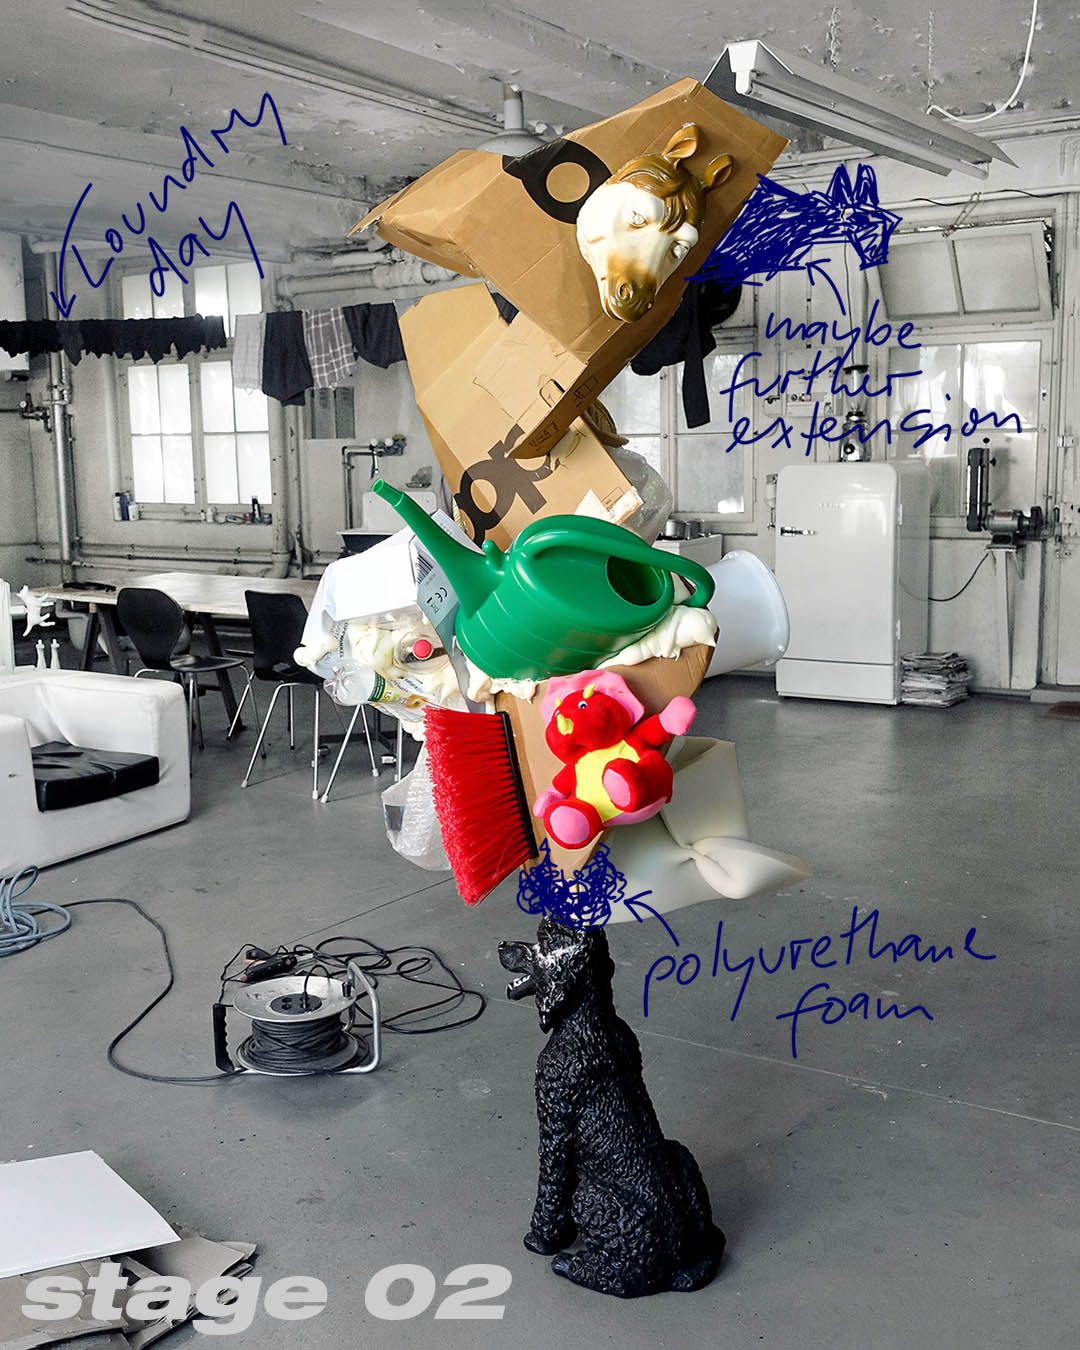 Stage two of the poodle balancing an abstract sculpture of waste on his head; work of art; artist Roland Faesser, sculptor and painter 2019